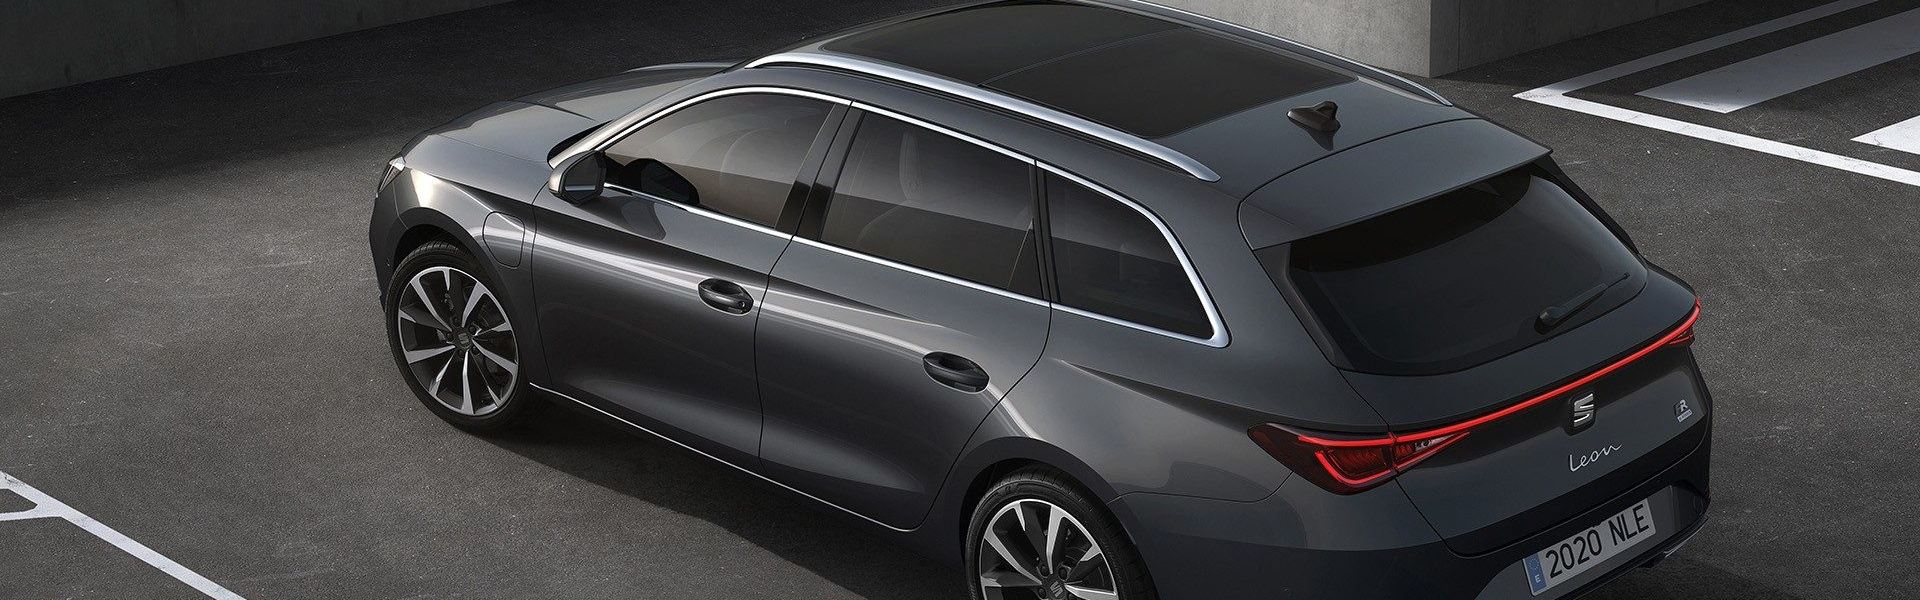 2020-Seat-Leon-Hatch-Estate-18.jpg